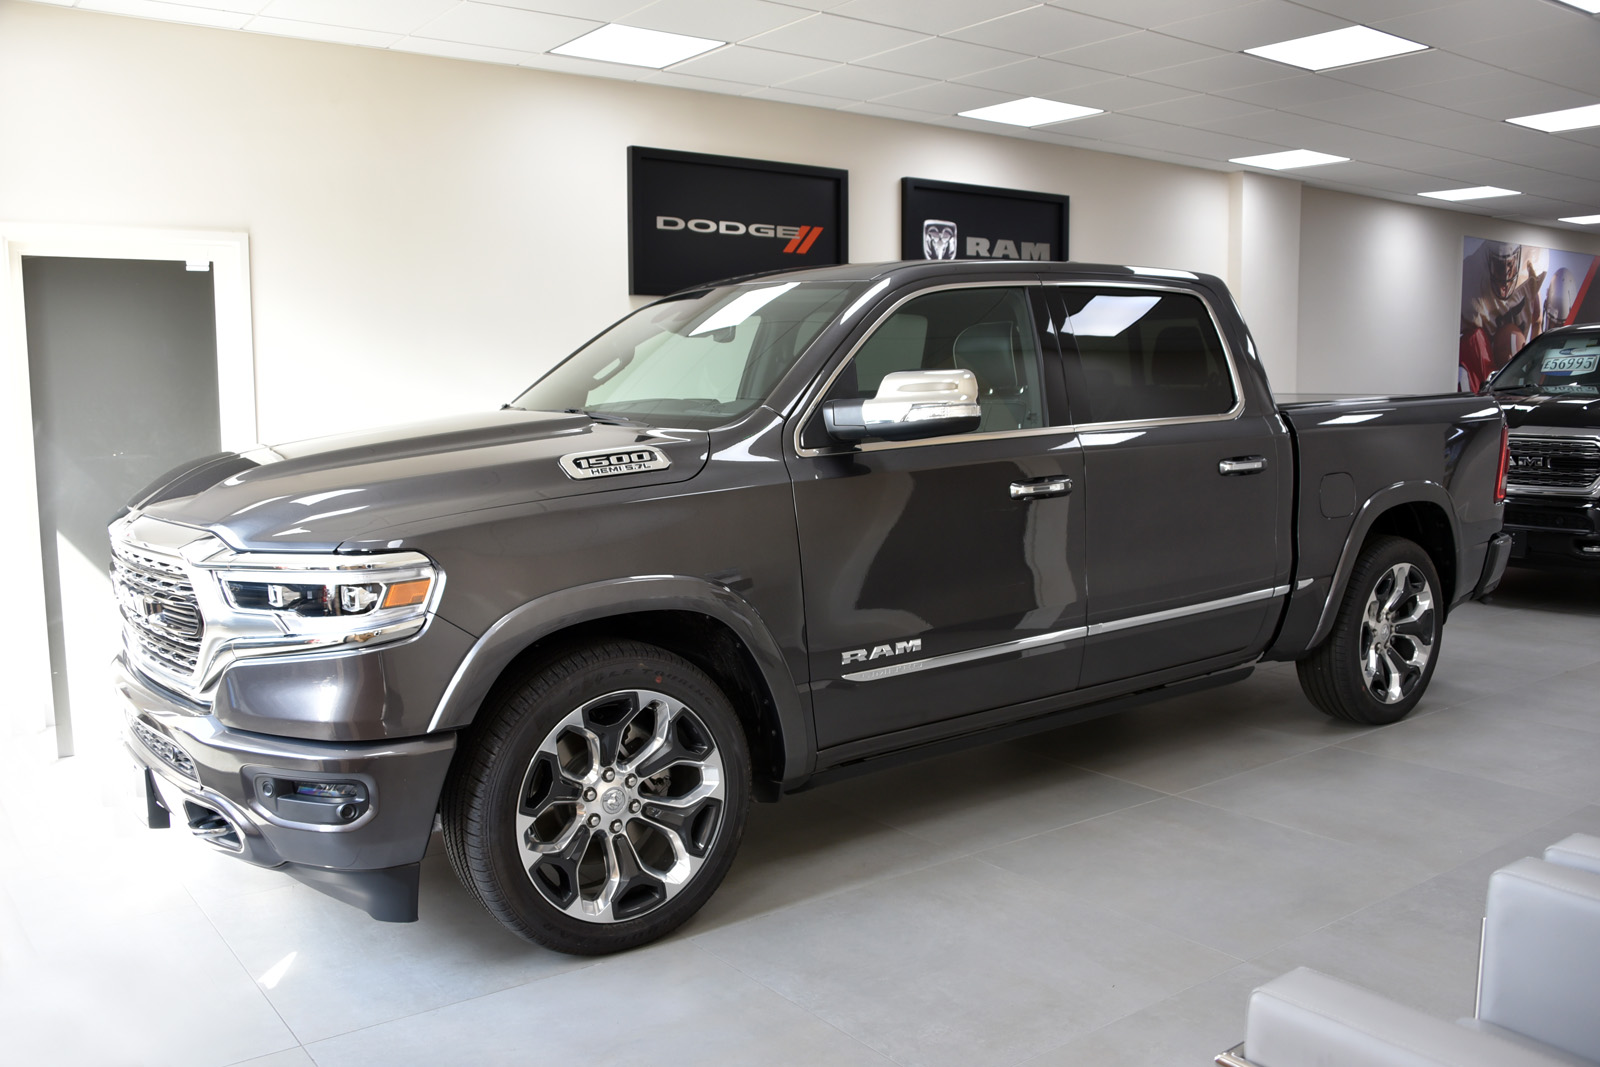 New RAM pickup trucks for sale in the UK